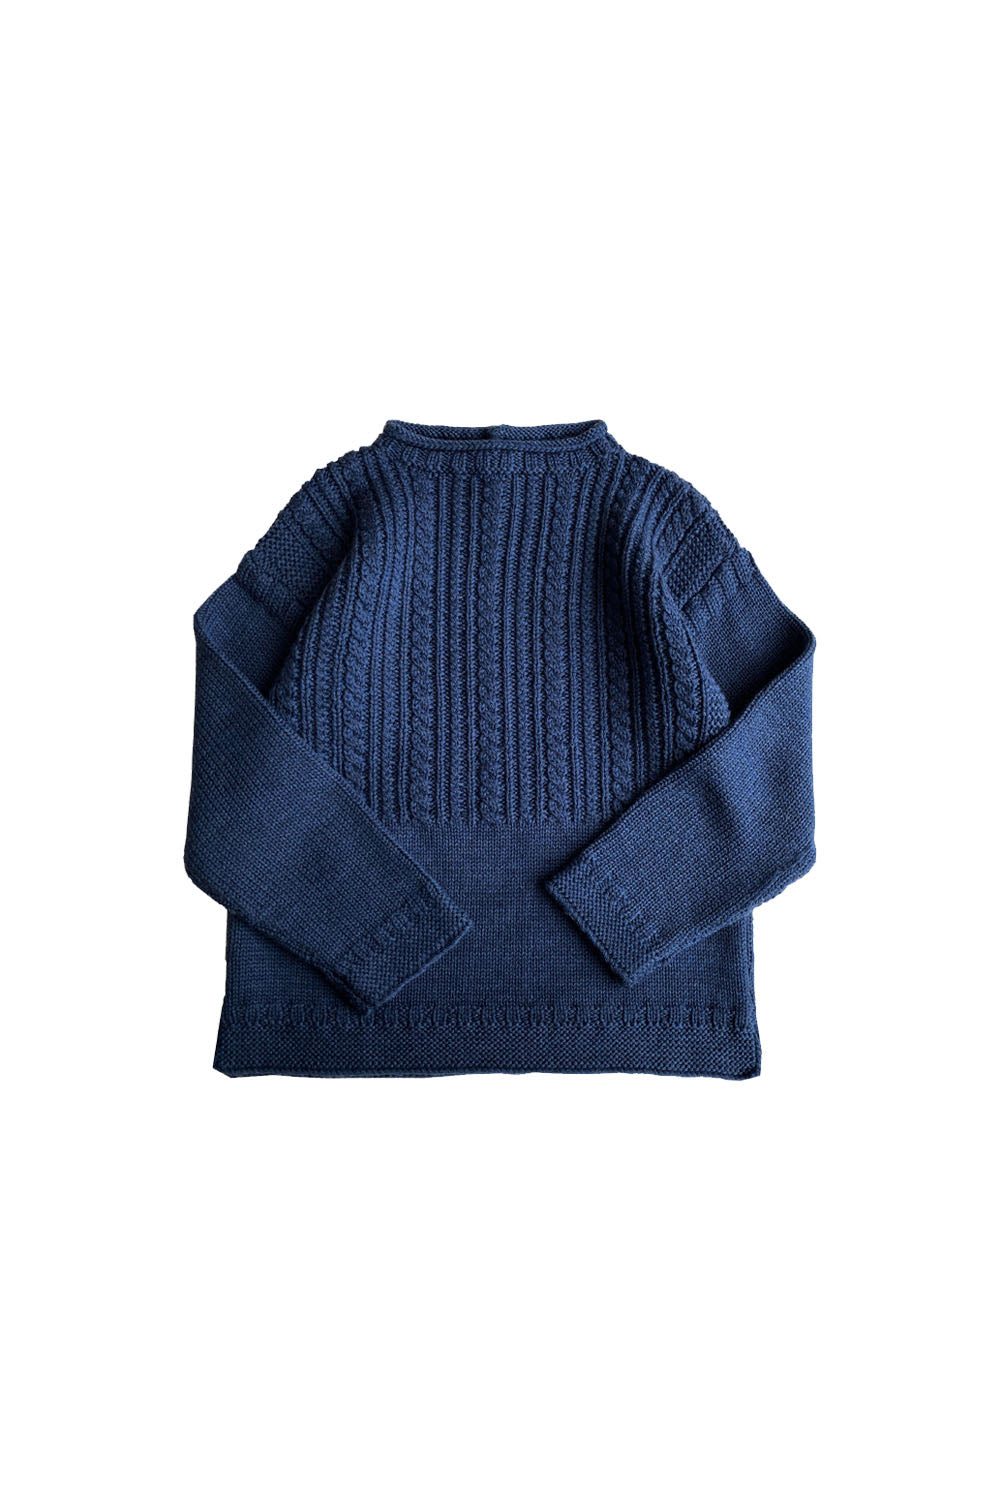 Mabli Slateblue Knitted Sweater